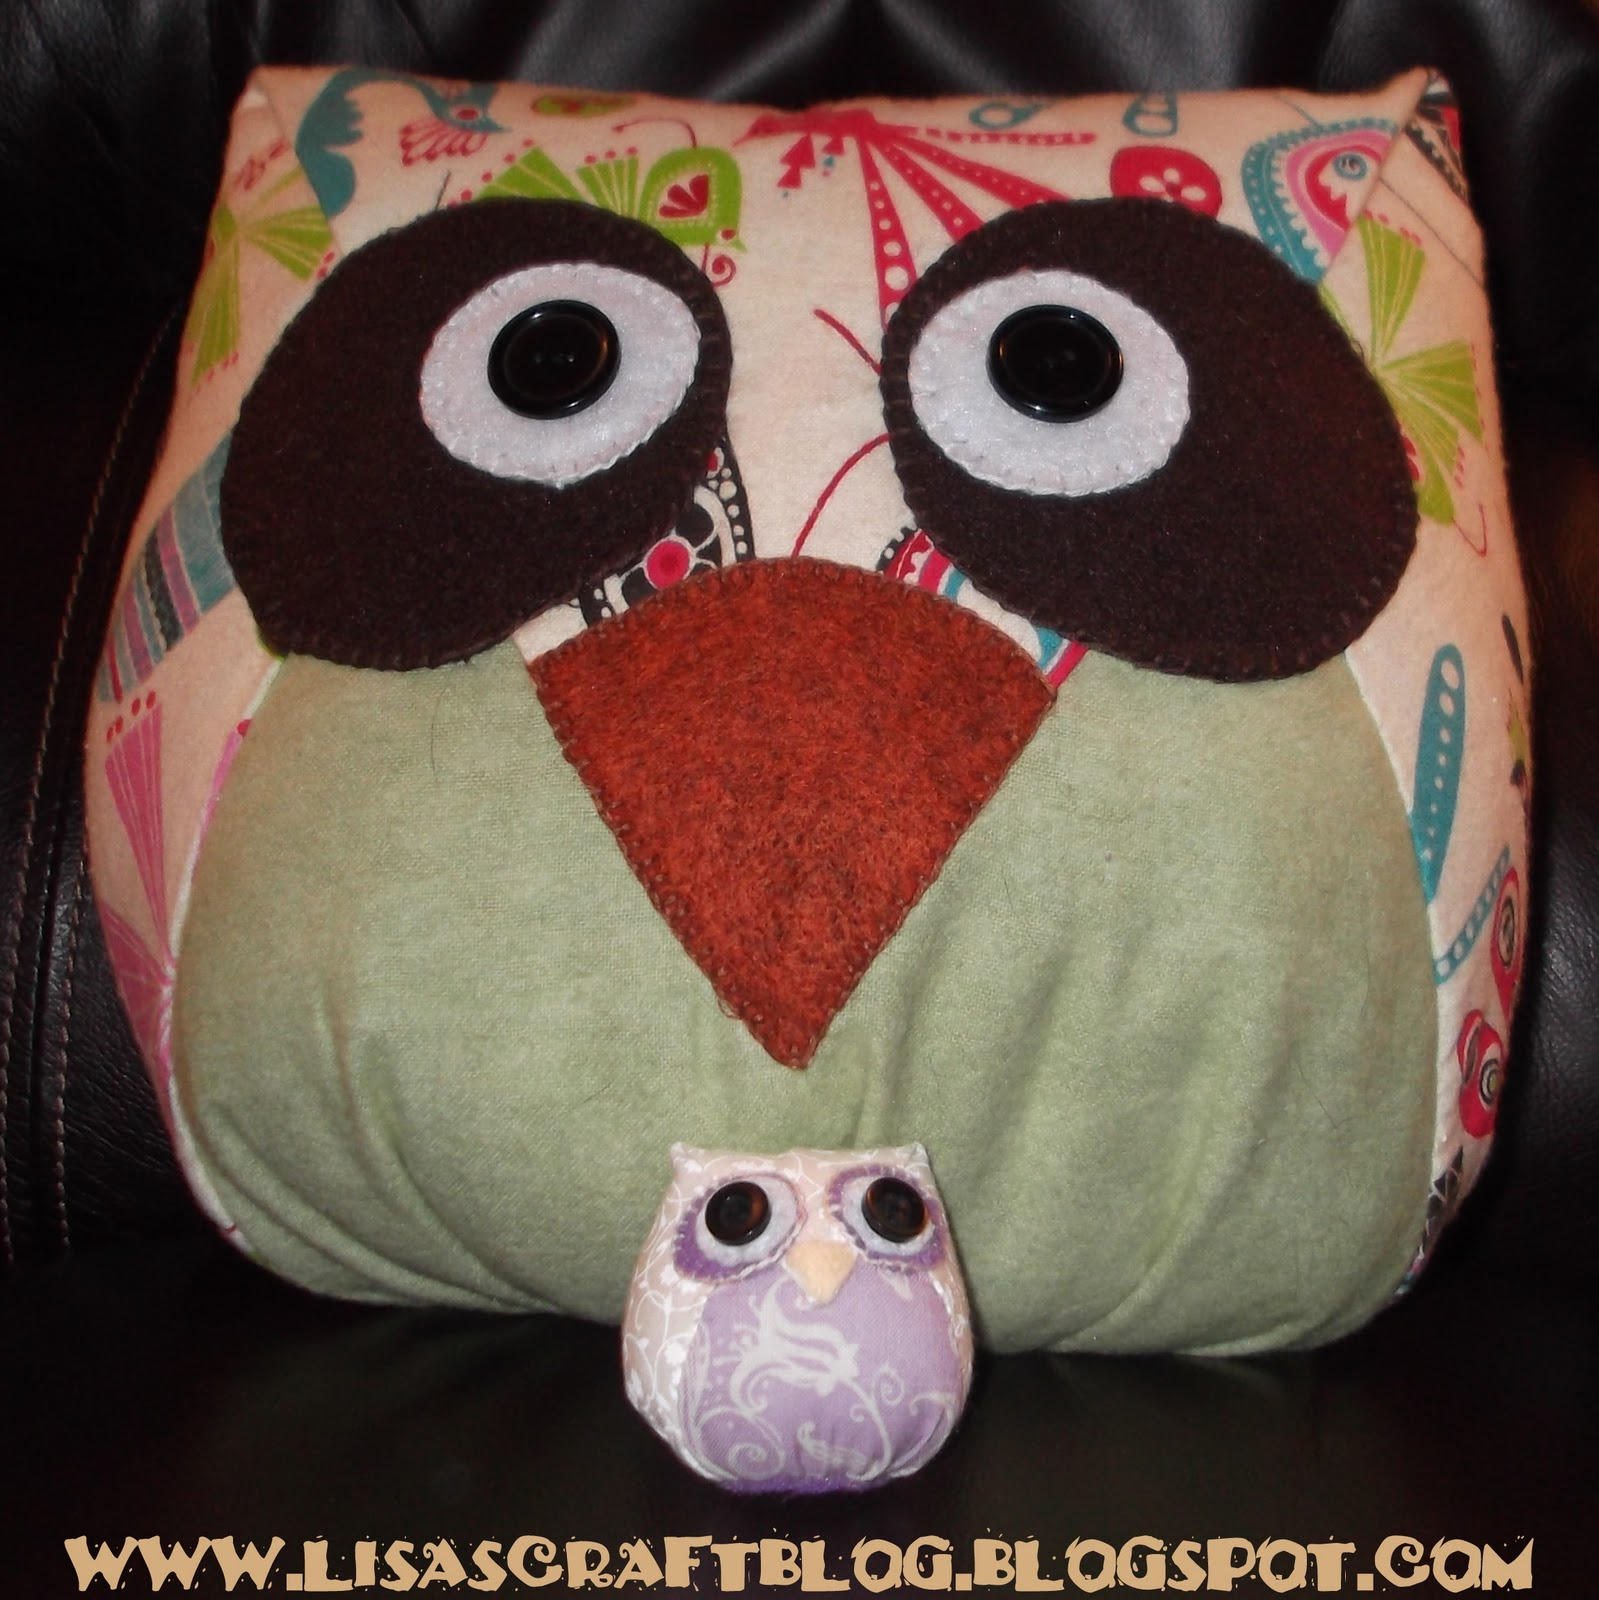 Stuff Owl Big Stuffed Zakka Owl She Lisa Or So She Says